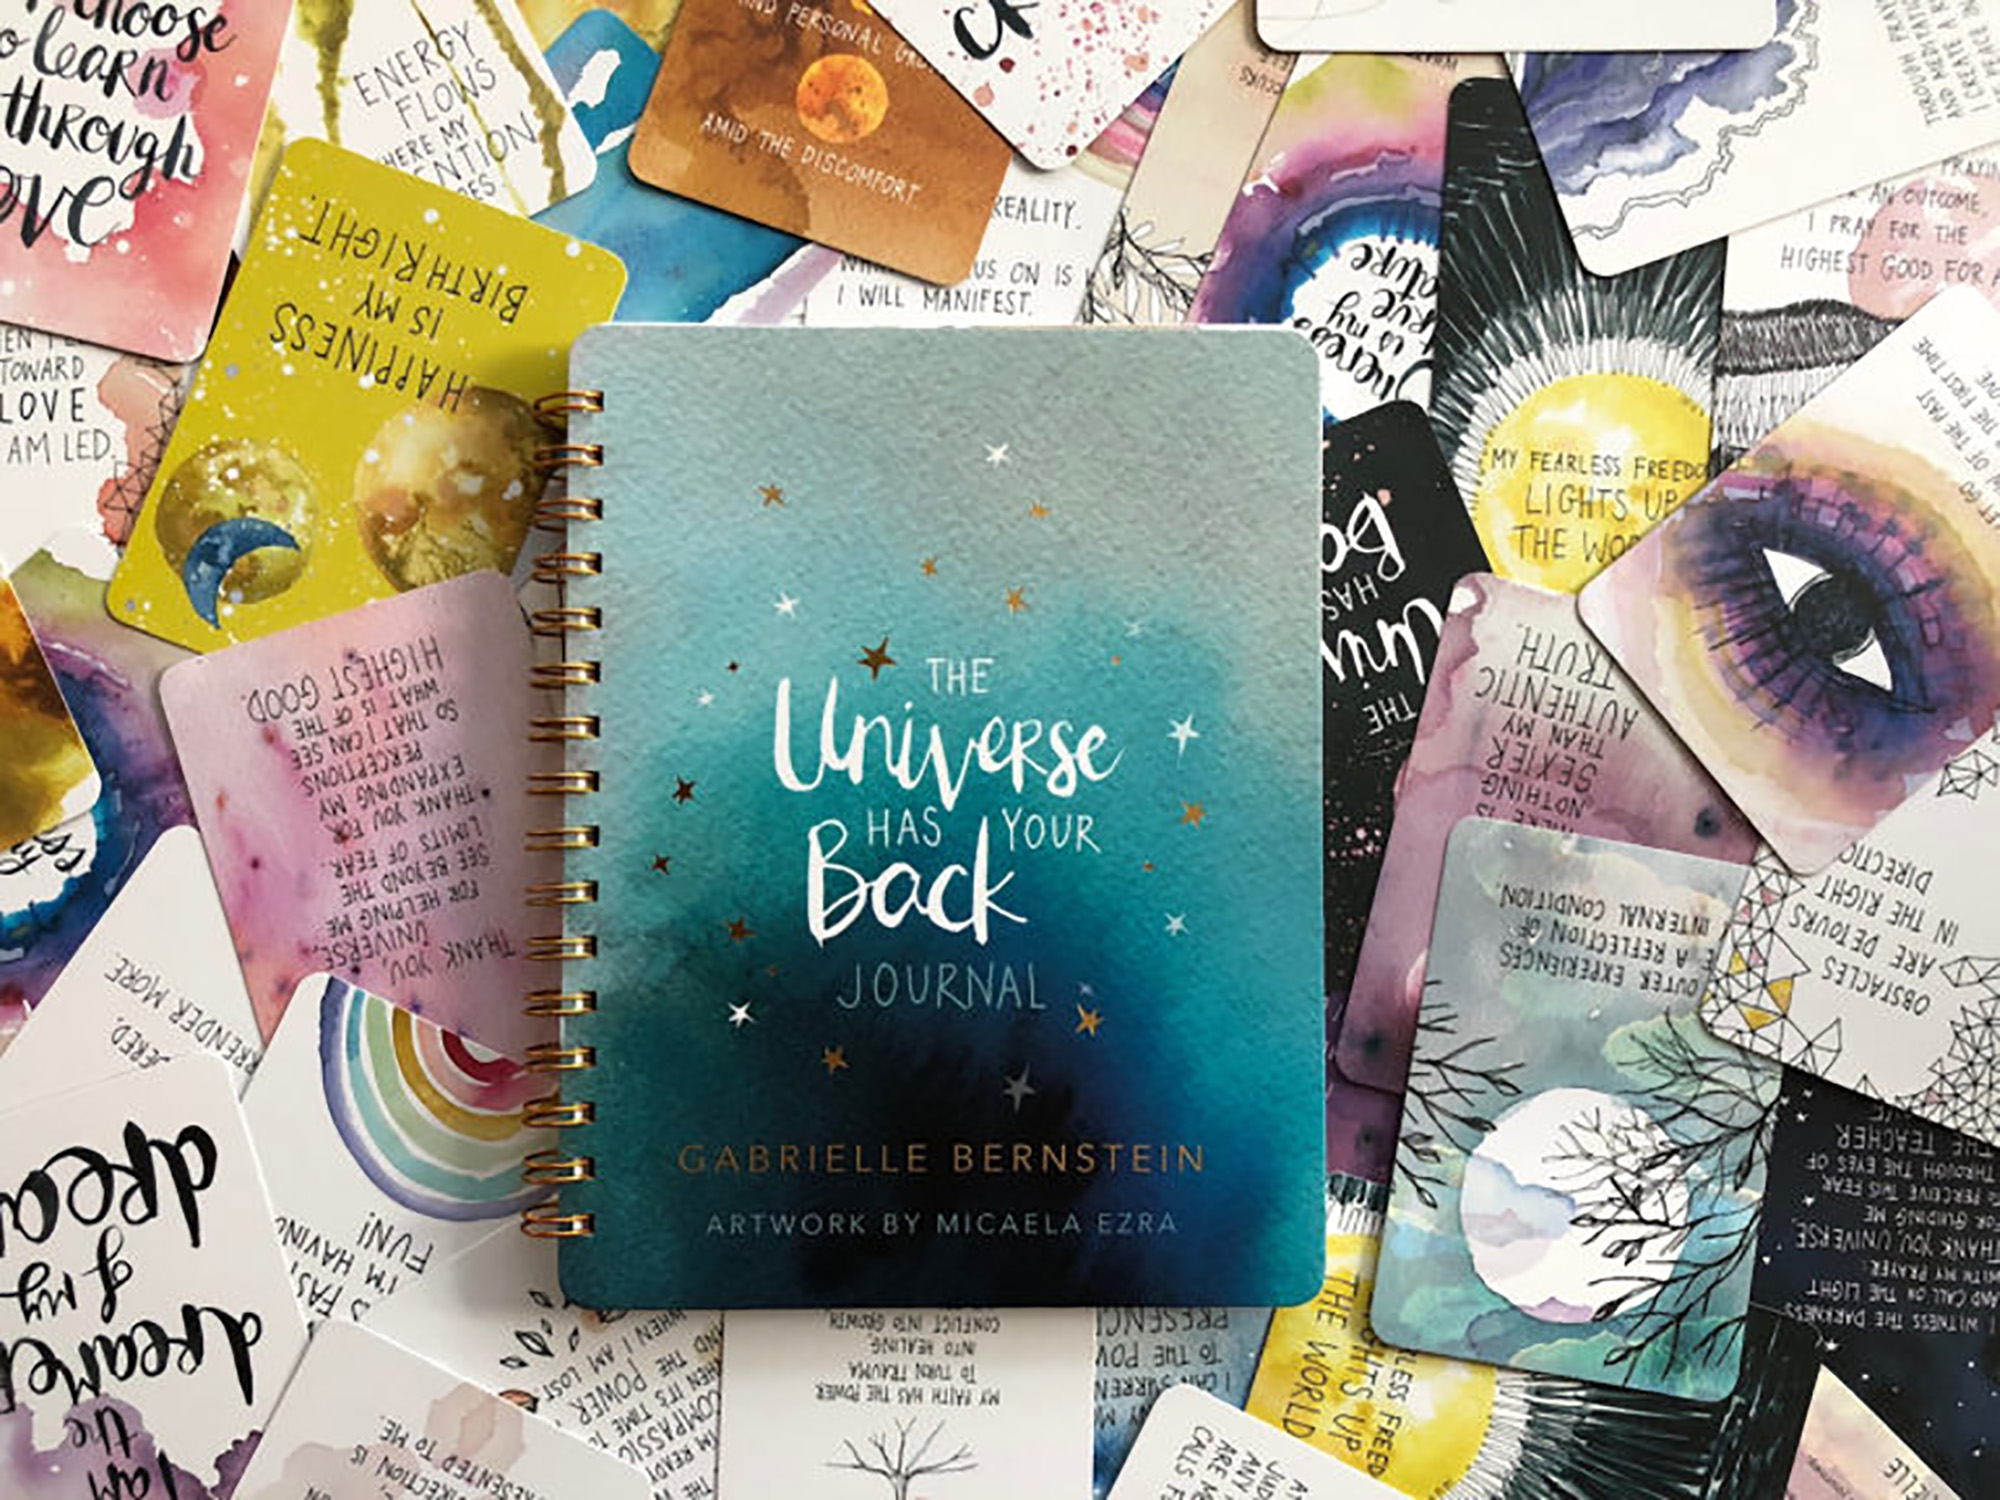 Types of Journals - The Universe Has Your Back